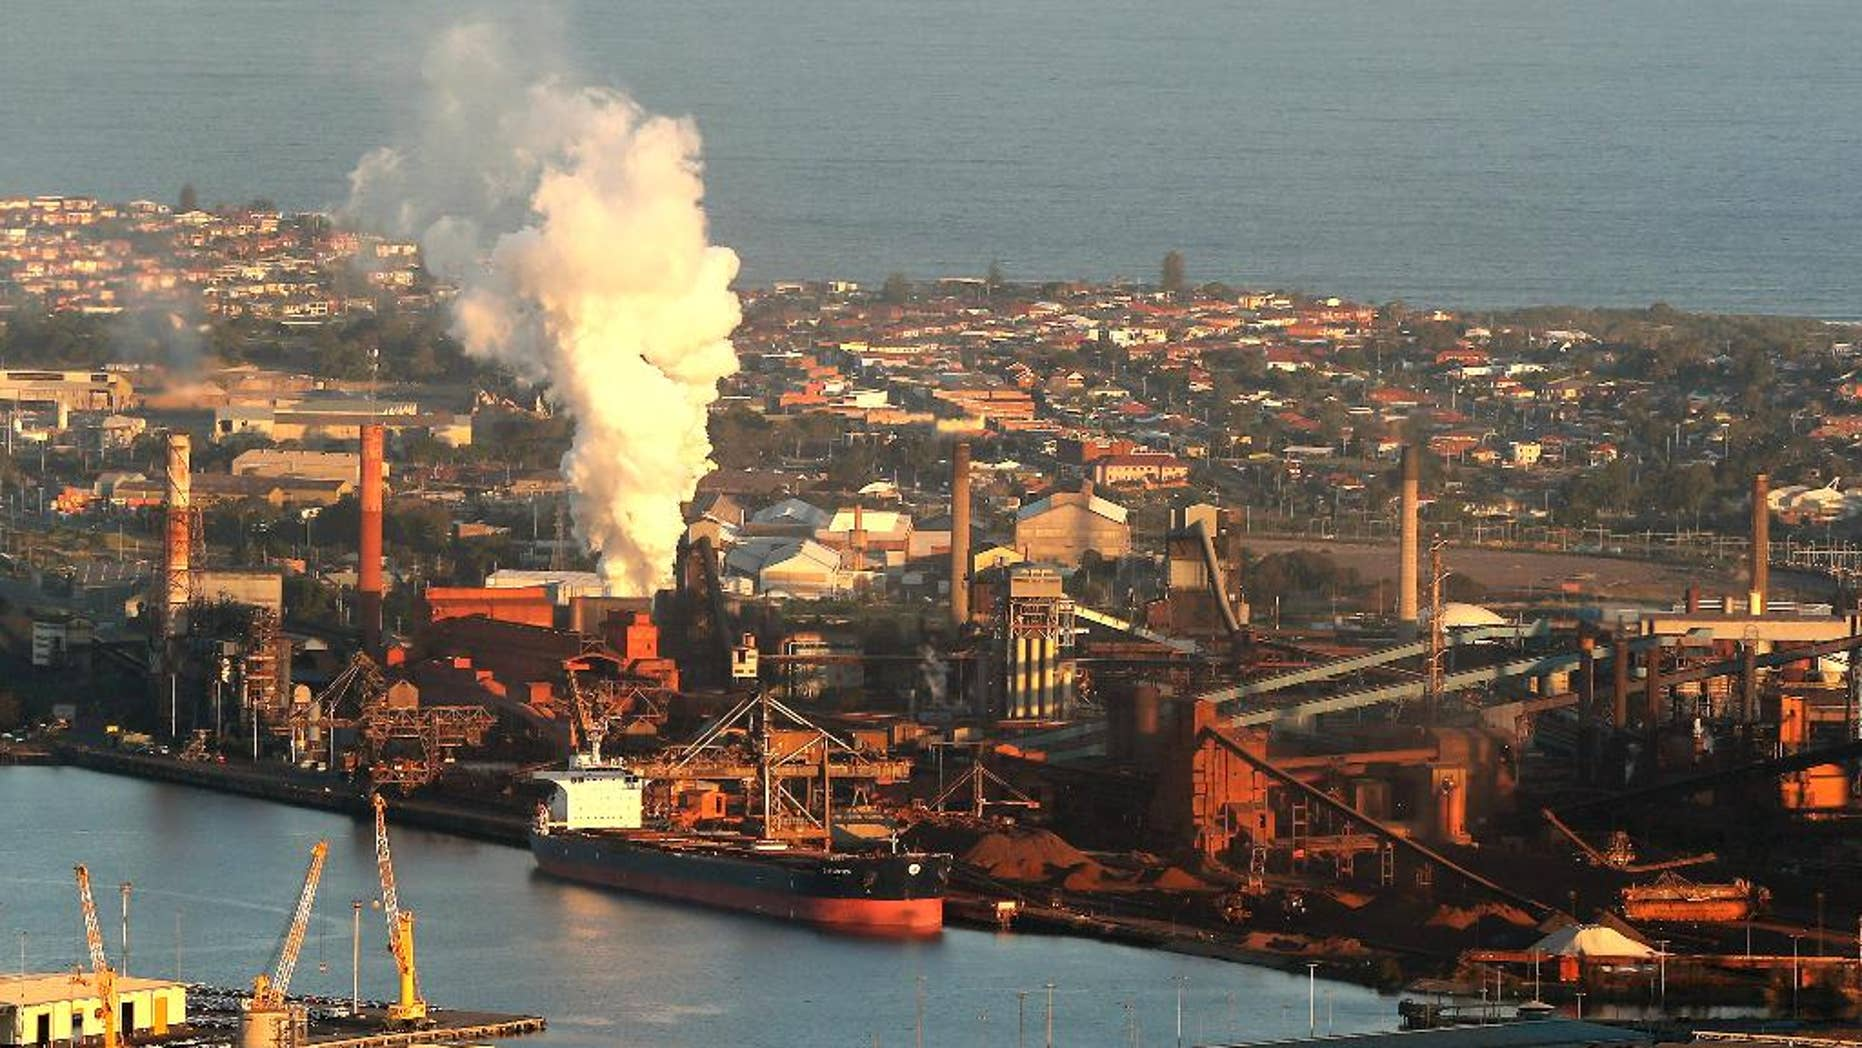 FILE - In this July 2, 2014 file photo, smoke billows out of a chimney stack of BHP steelwork factories at Port Kembla, south of Sydney, Australia. The world's biggest miner, BHP Billiton, on Tuesday, Aug. 16, 2016, reported a $6.4 billion loss, the worst full-year result in the Anglo-Australian company's history. BHP said the result for the fiscal year ending June 30 came from a 31 percent fall in revenue to $30.1 billion amid weak commodity prices, write downs of U.S. oil and gas assets and a disaster at a Brazilian mining joint venture. (AP Photo/Rob Griffith, File)